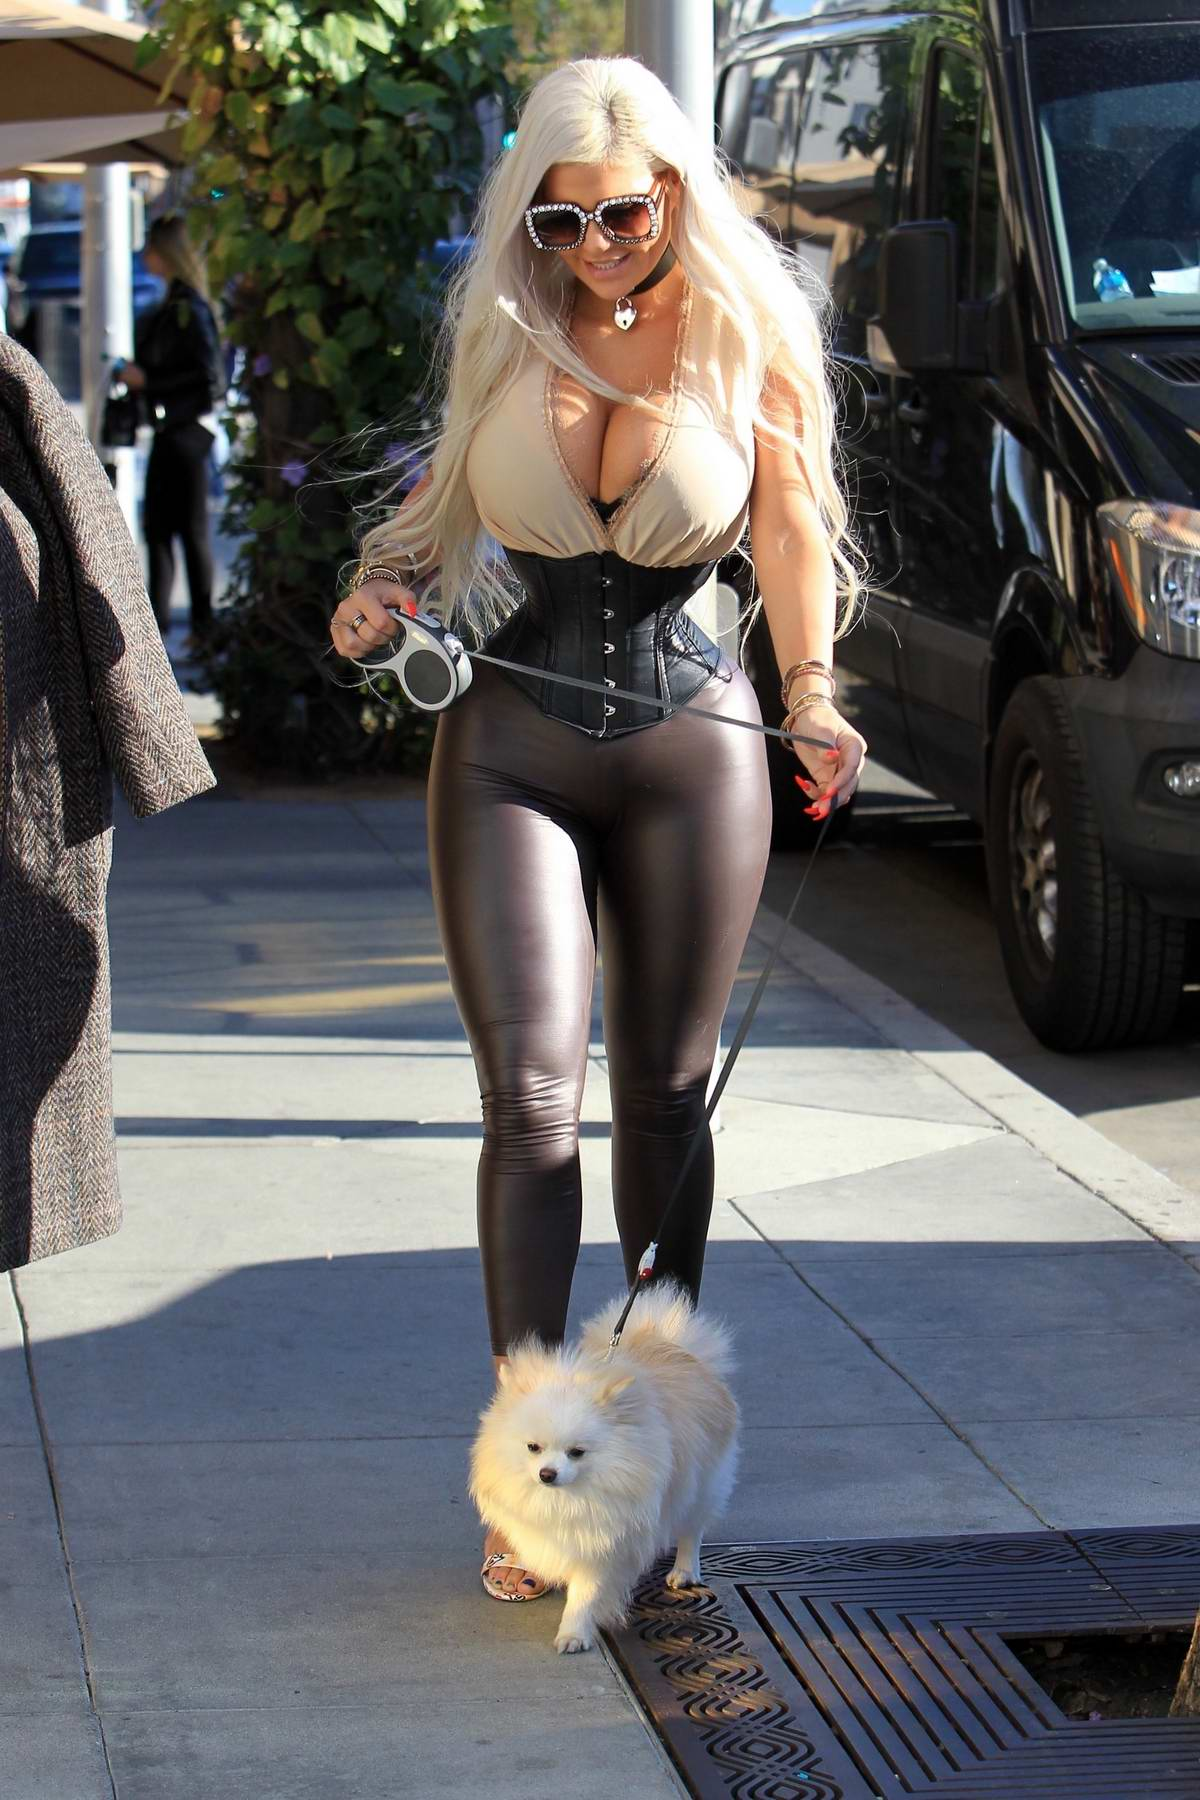 Sophia Vegas Wollersheim takes her Pomeranian dog along for some shopping in Beverly Hills, Los Angeles